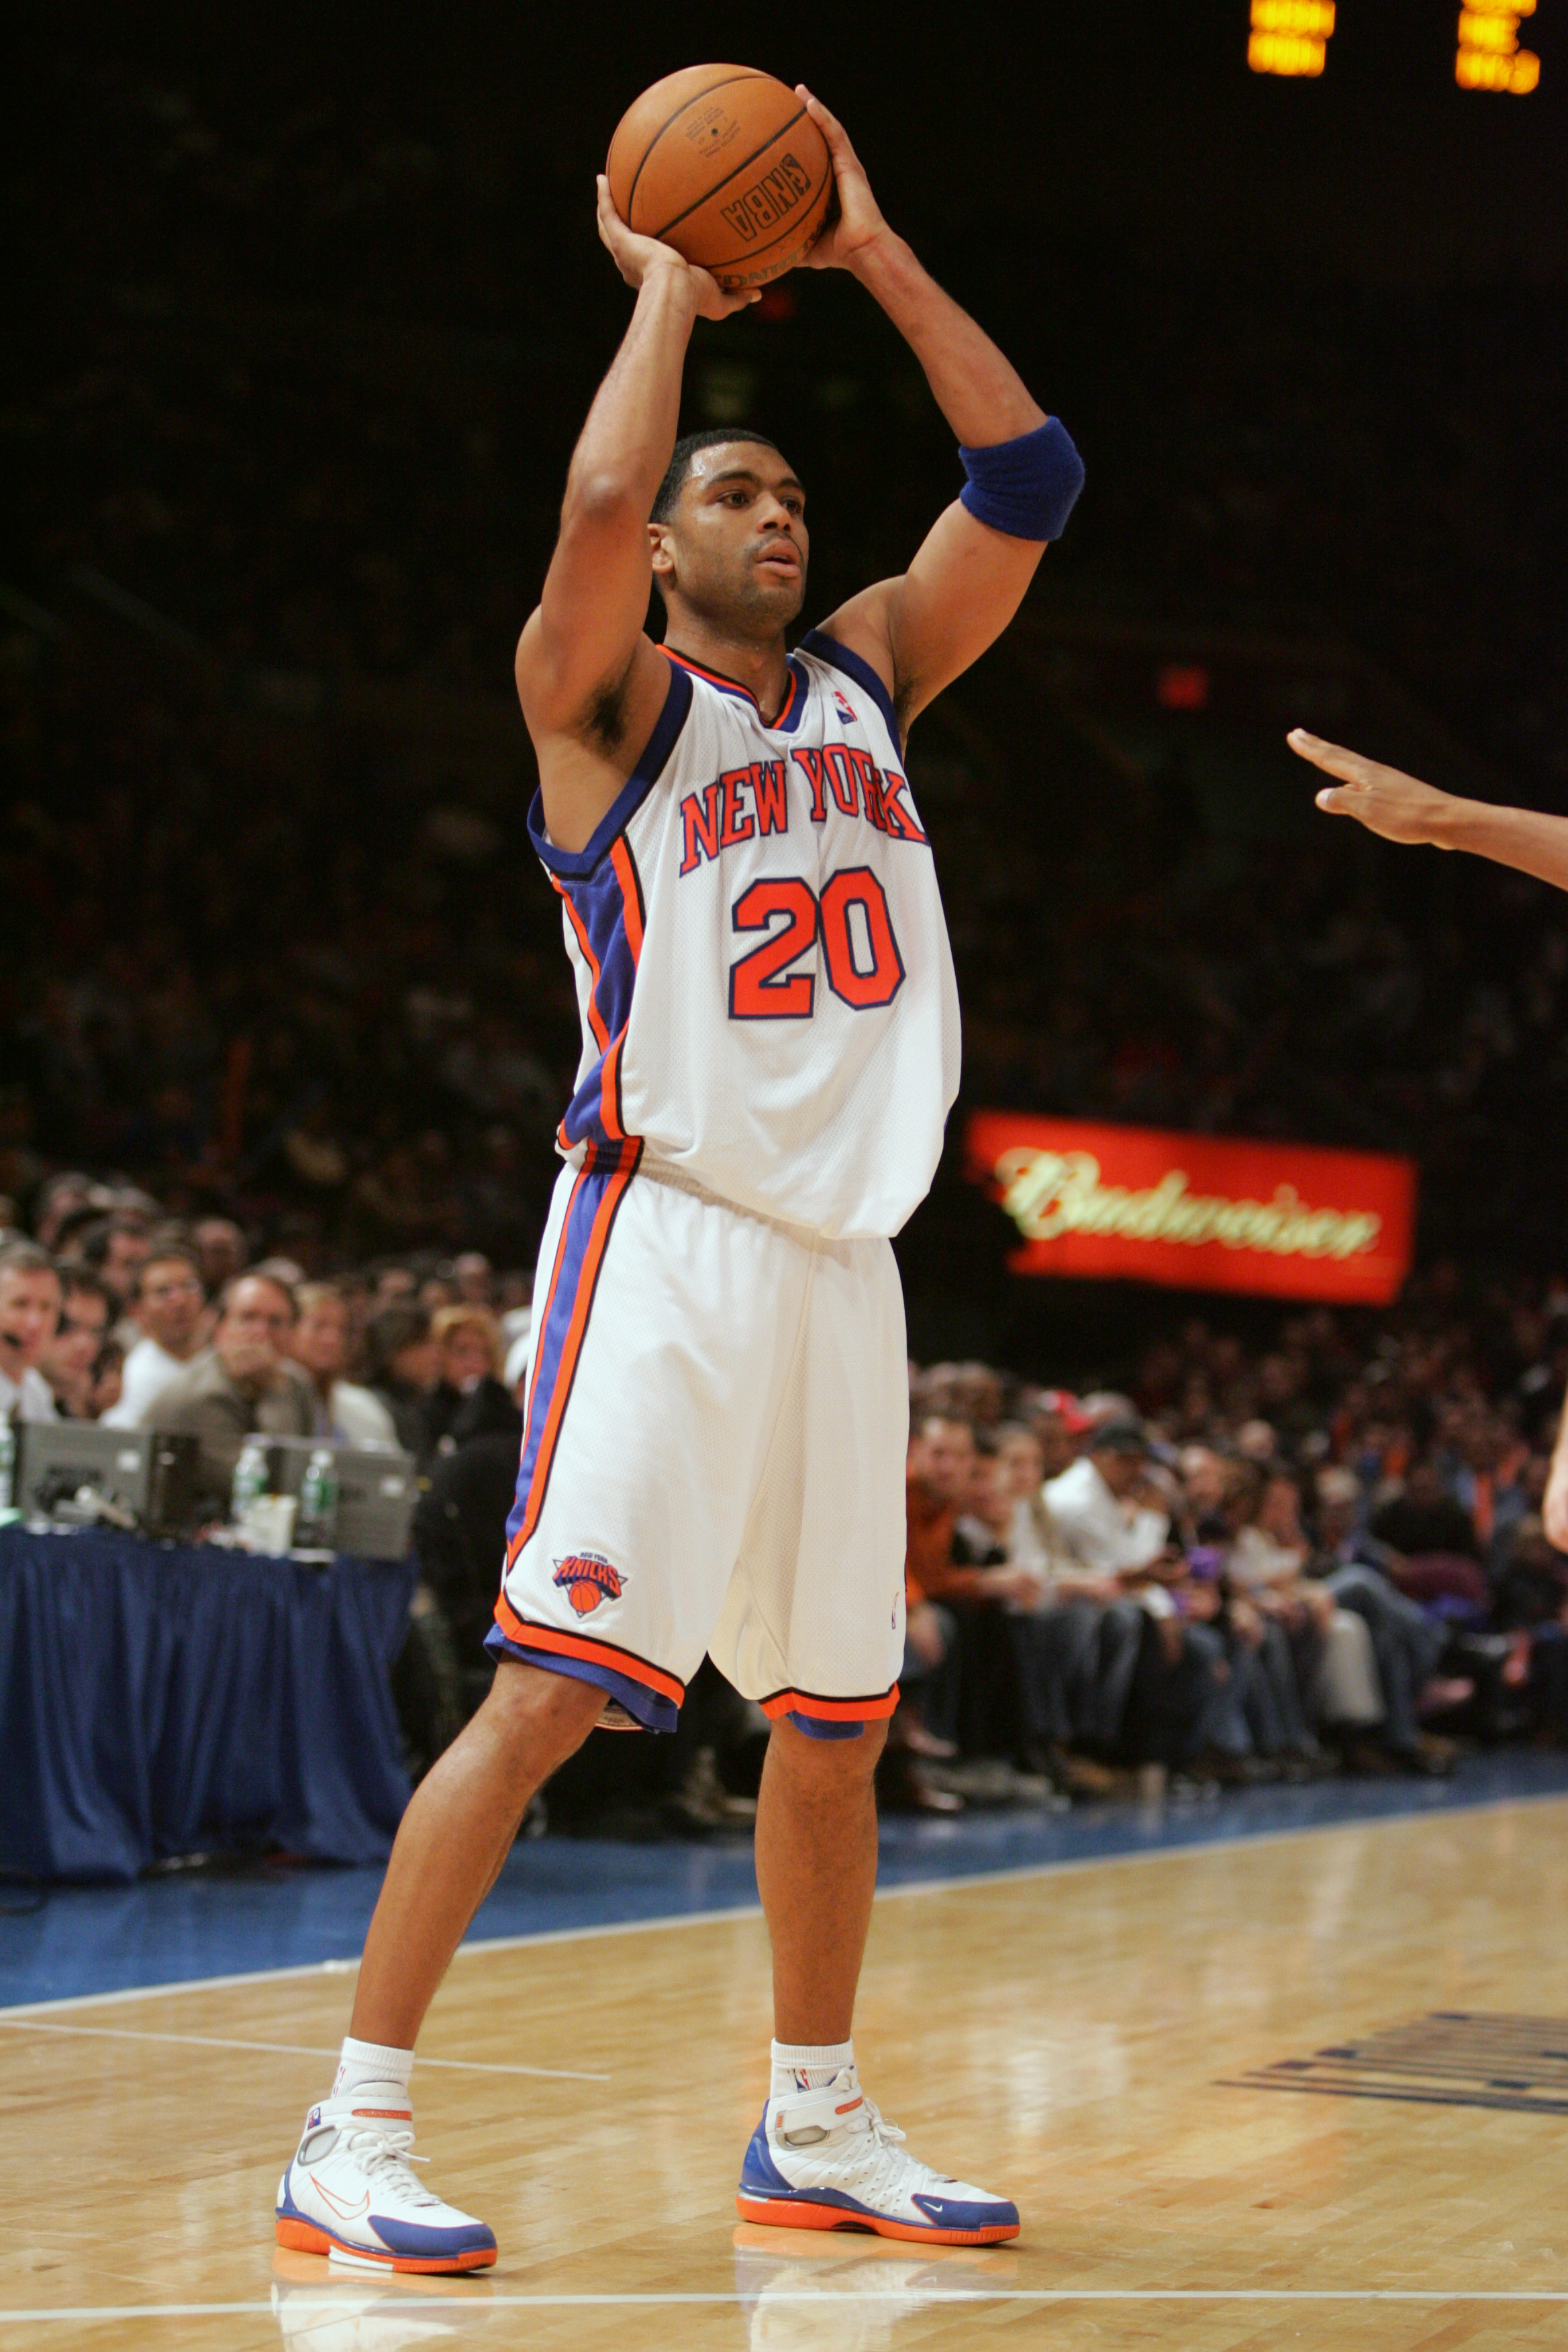 NEW YORK - DECEMBER 26:  Allan Houston #20 of the New York Knicks holds the ball during the game against the Charlotte Bobcats on December 26, 2004 at Madison Square Garden in New York City, New York. The Knicks won 91-82.  NOTE TO USER: User expressly ac